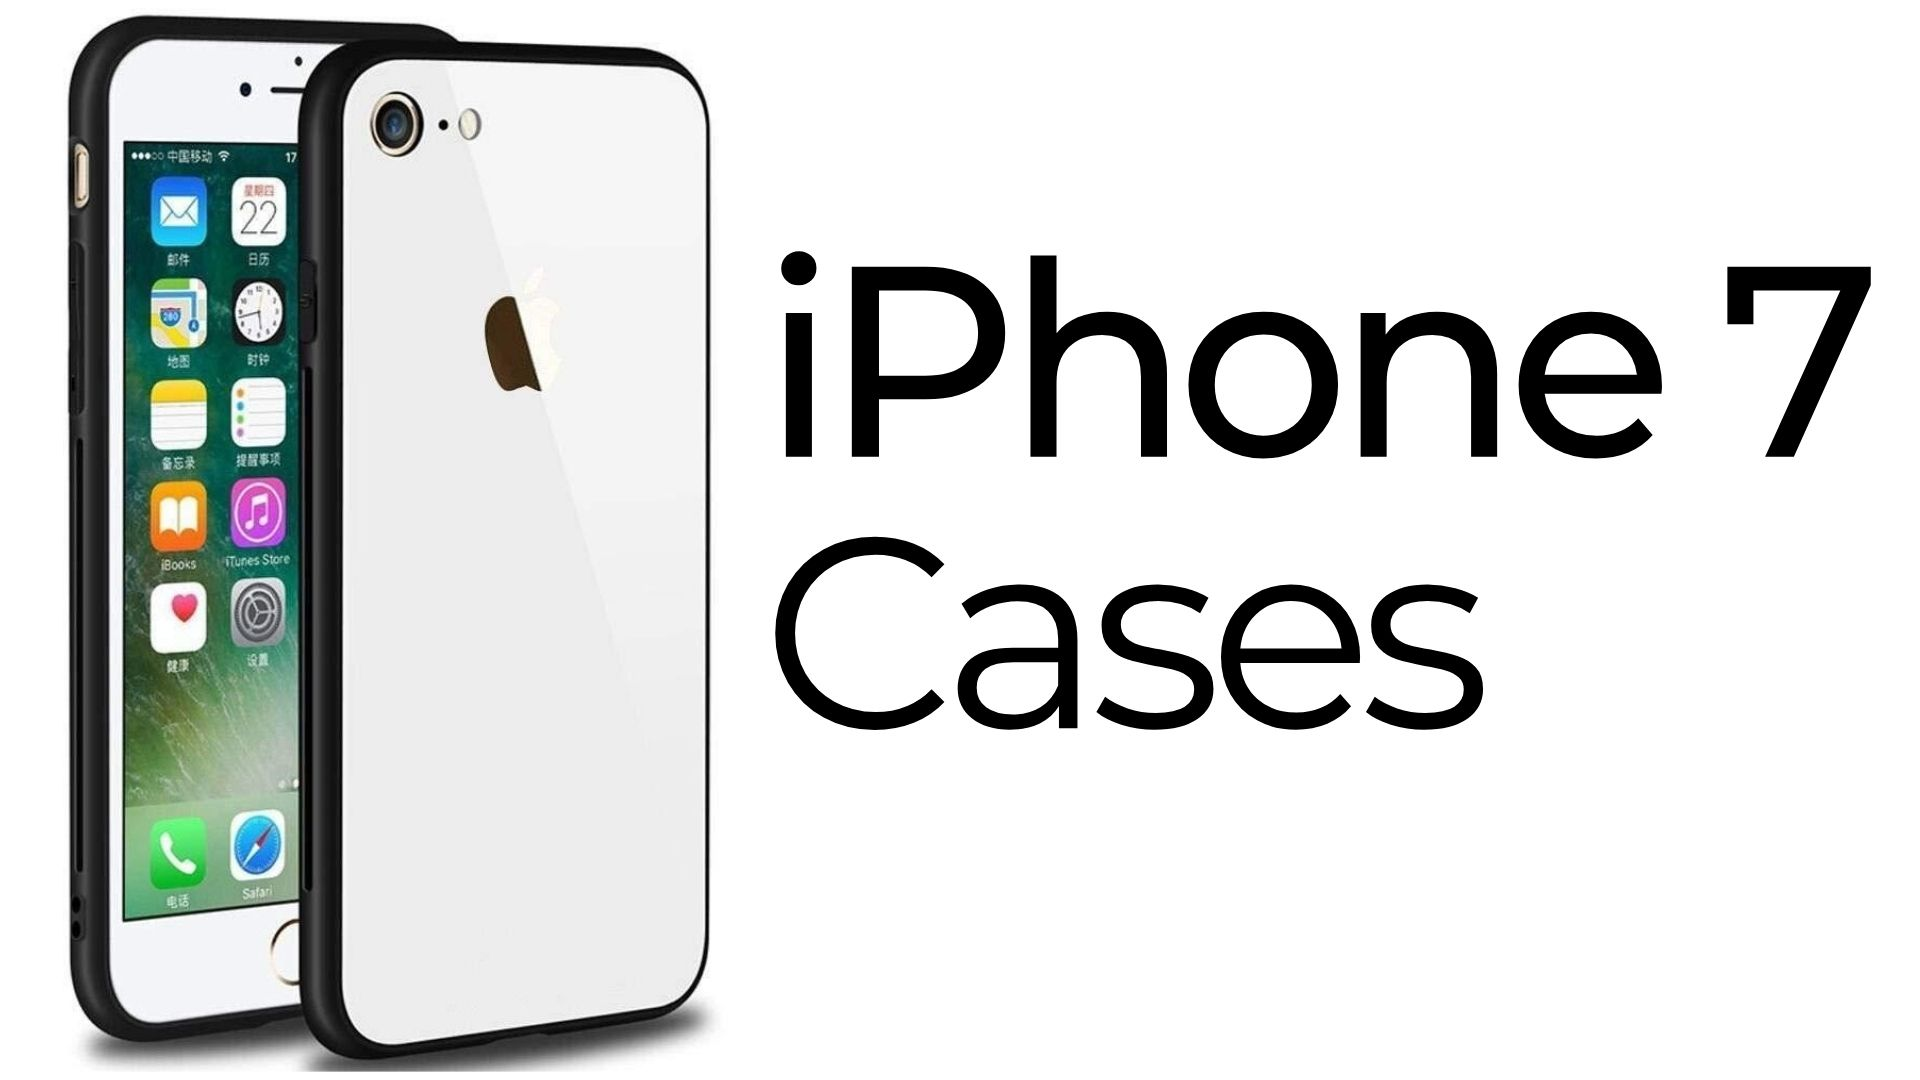 iphone 7 cases & covers